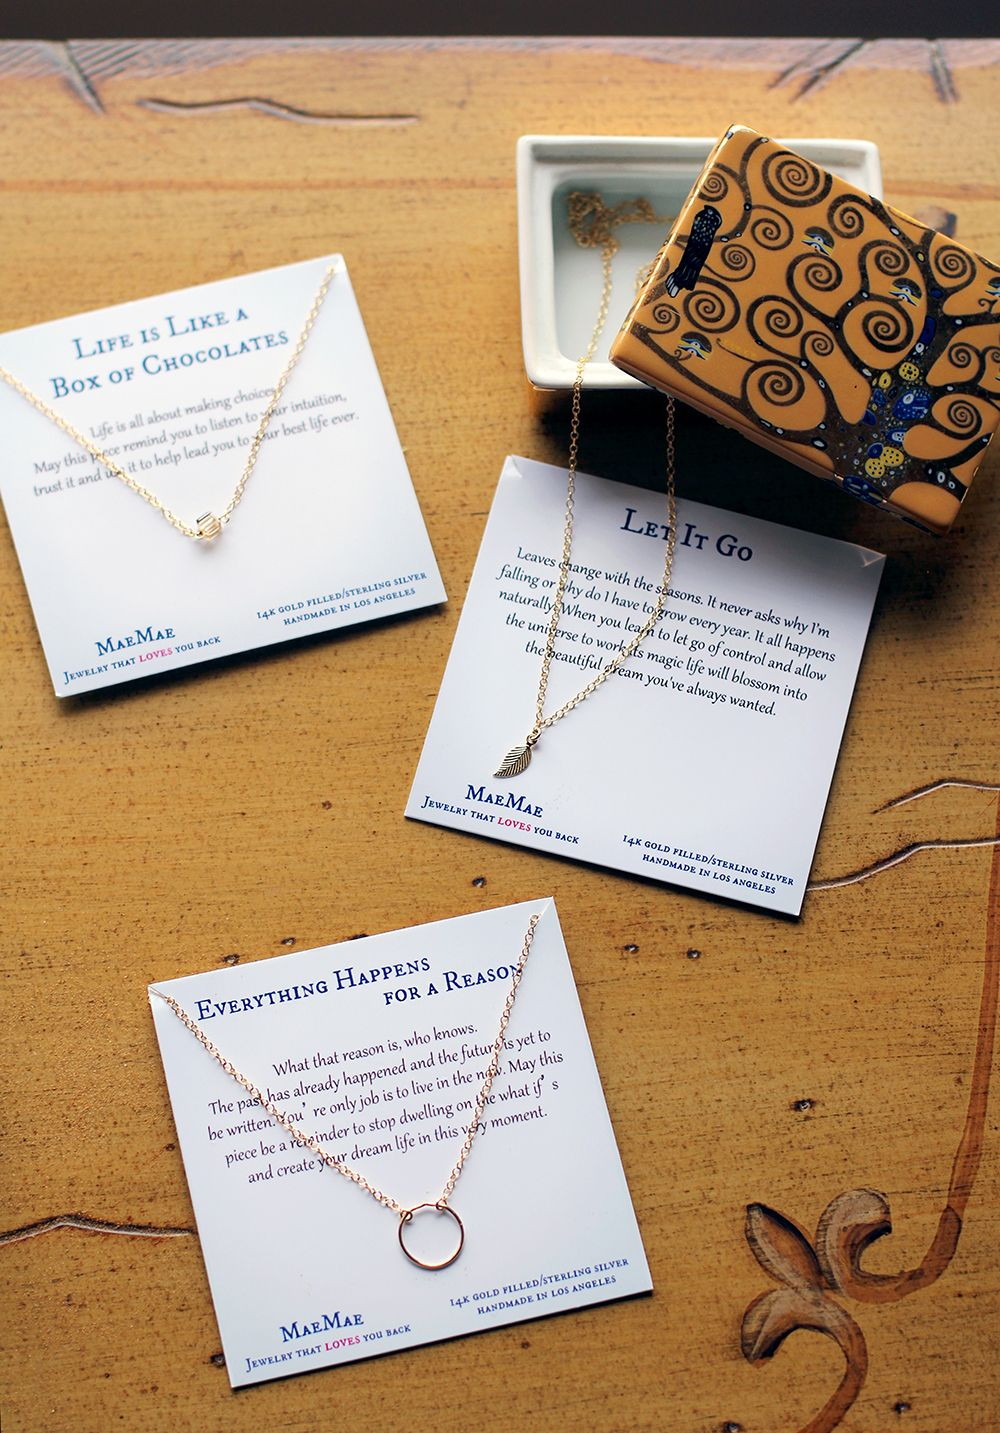 Perfect everyday necklaces. These pieces are simple yet pack powerful messages. Share in our journey of change and acceptance.